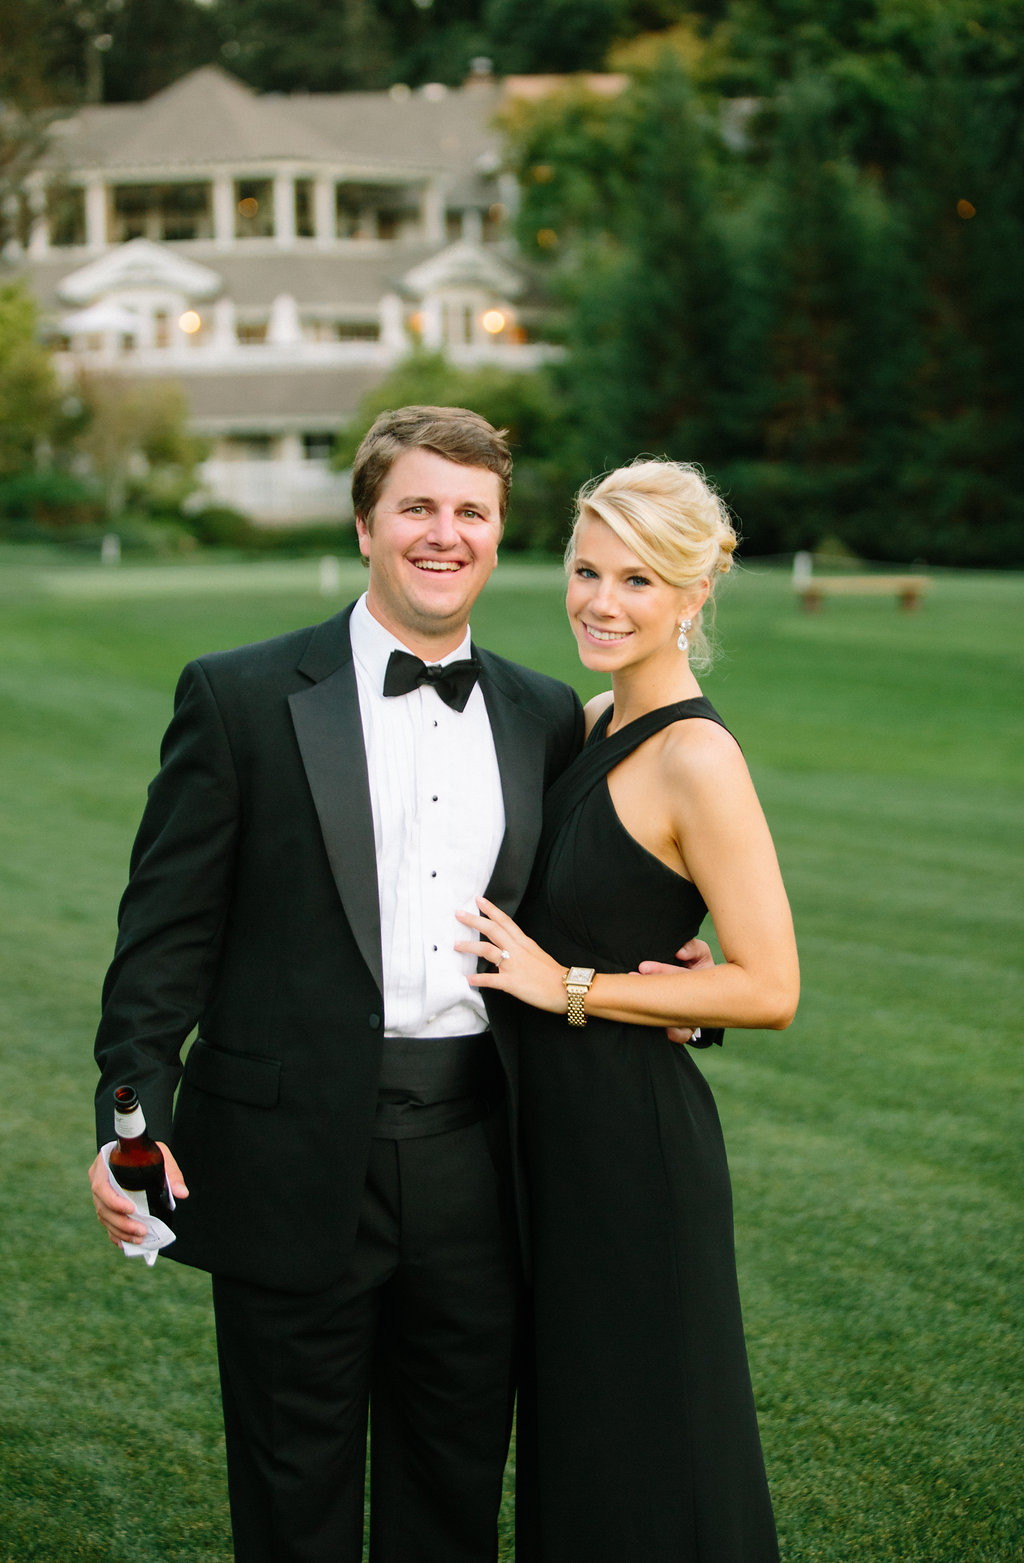 Katlin&Nawder-CocktailHour-LindsayMaddenPhotography-83.jpg